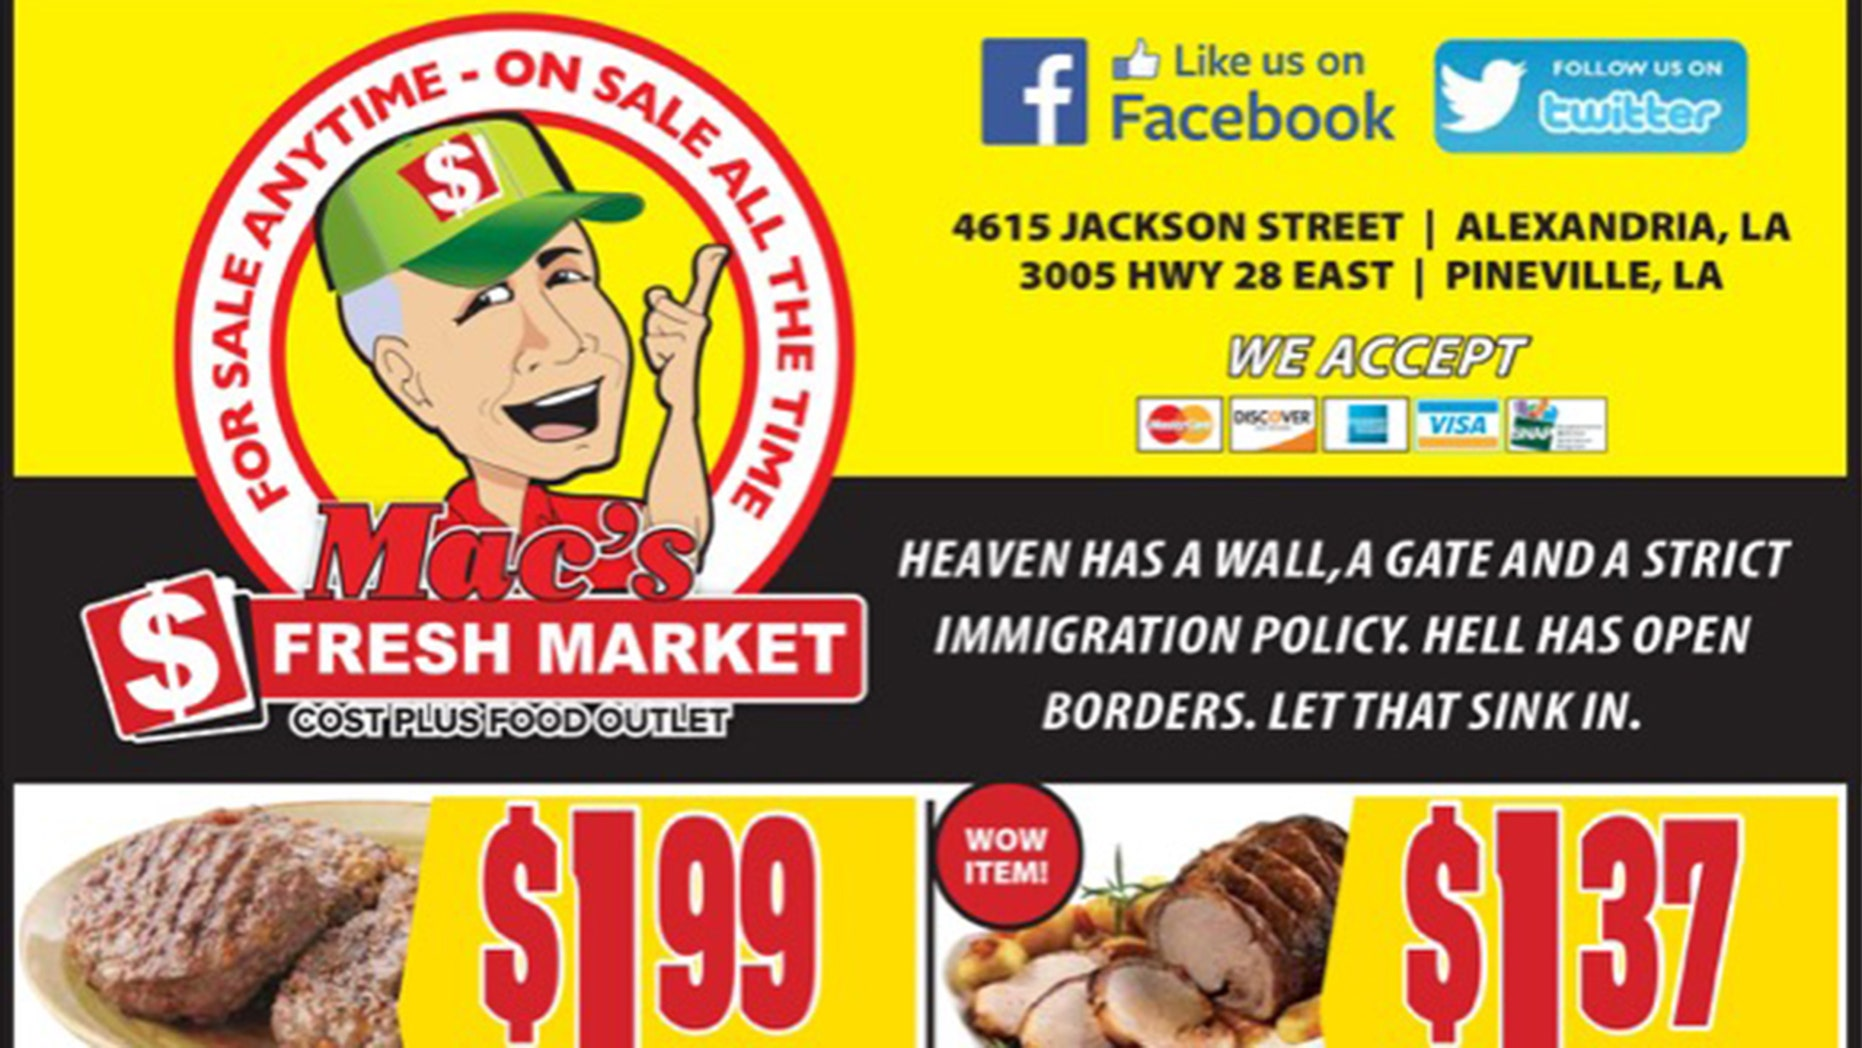 A grocery store chain in the South is facing backlash for printing a political message on its mailers.